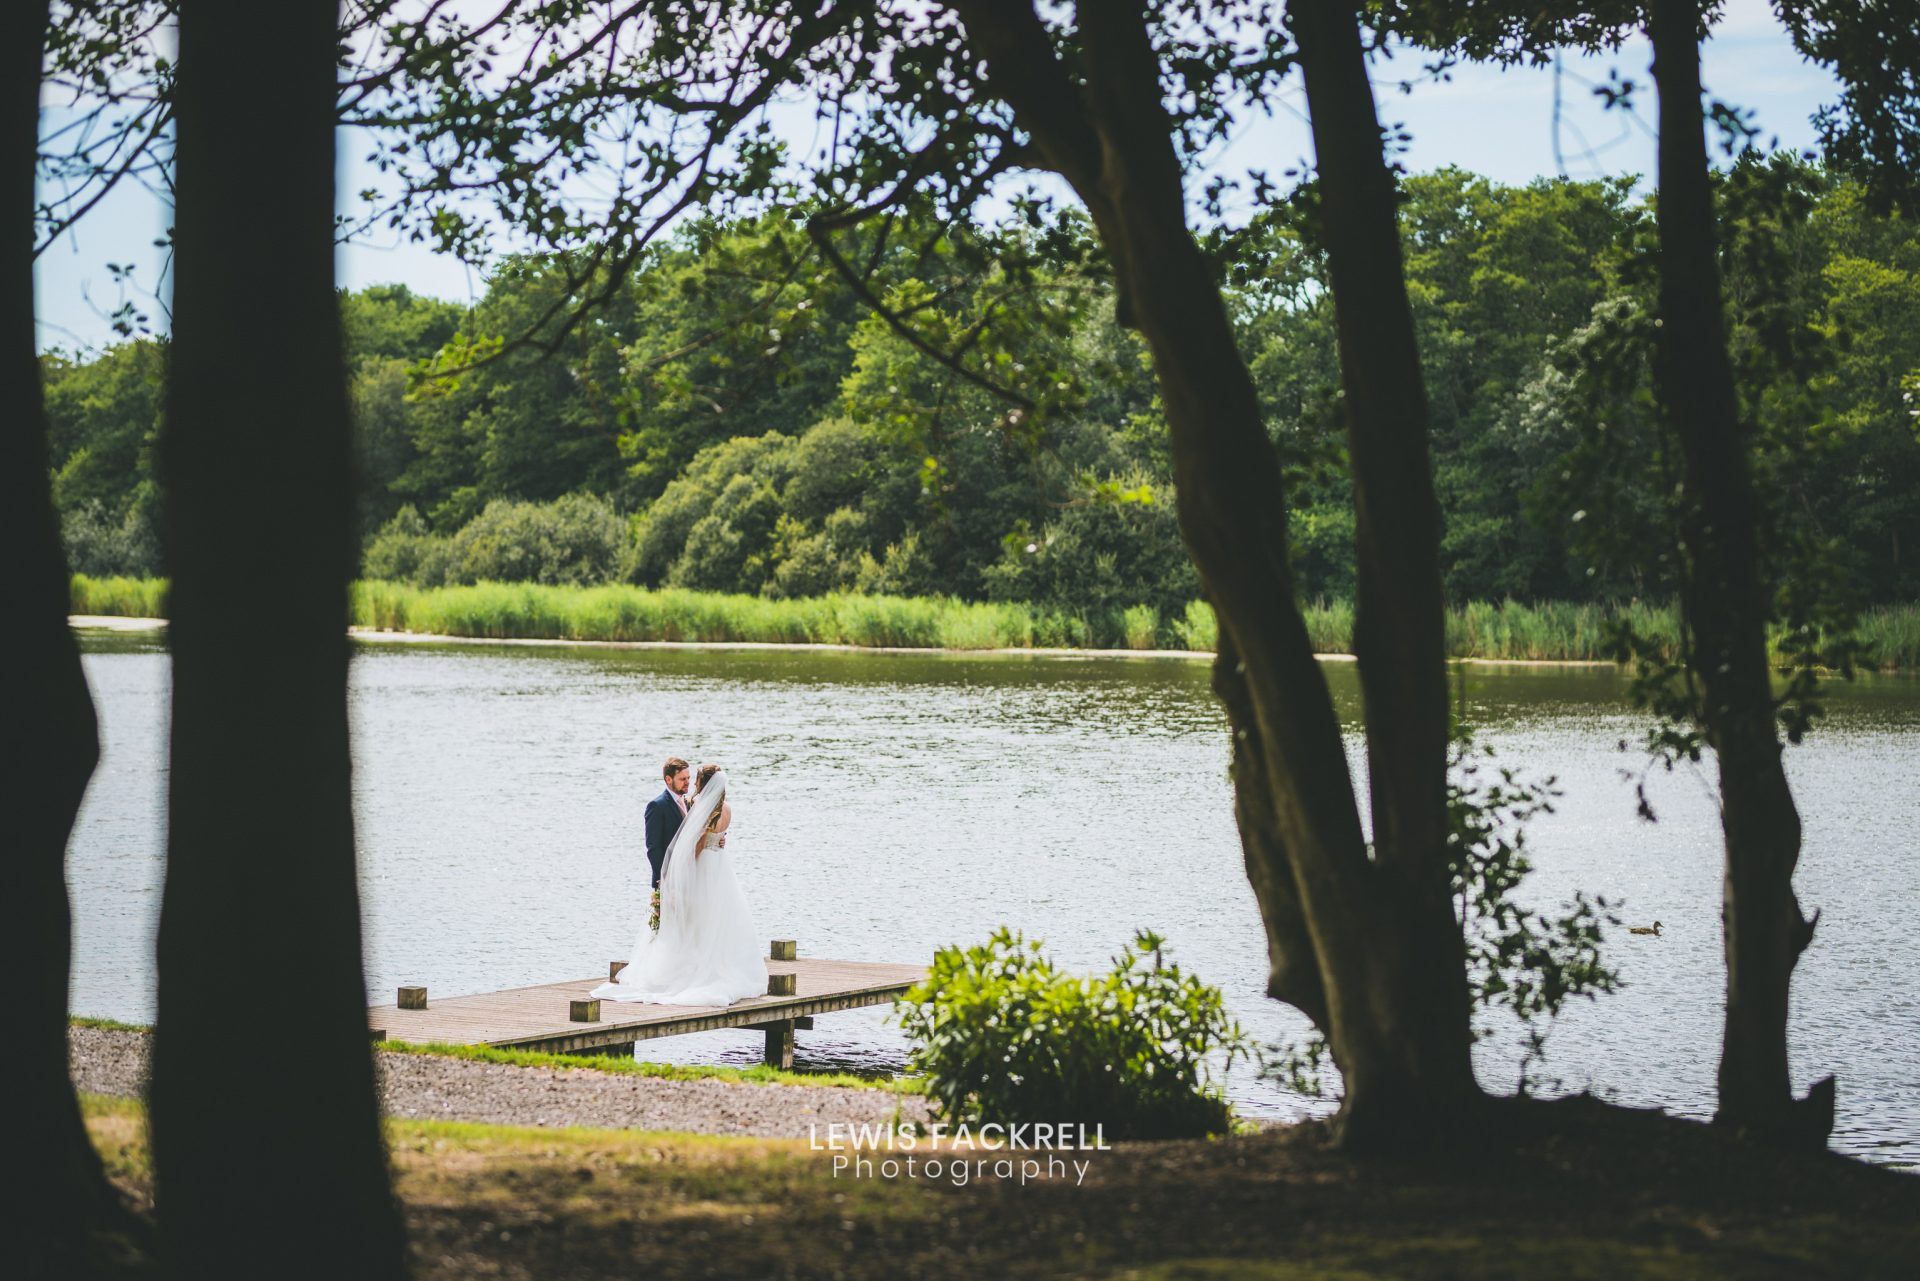 Hensol Castle wedding venues in South Wales